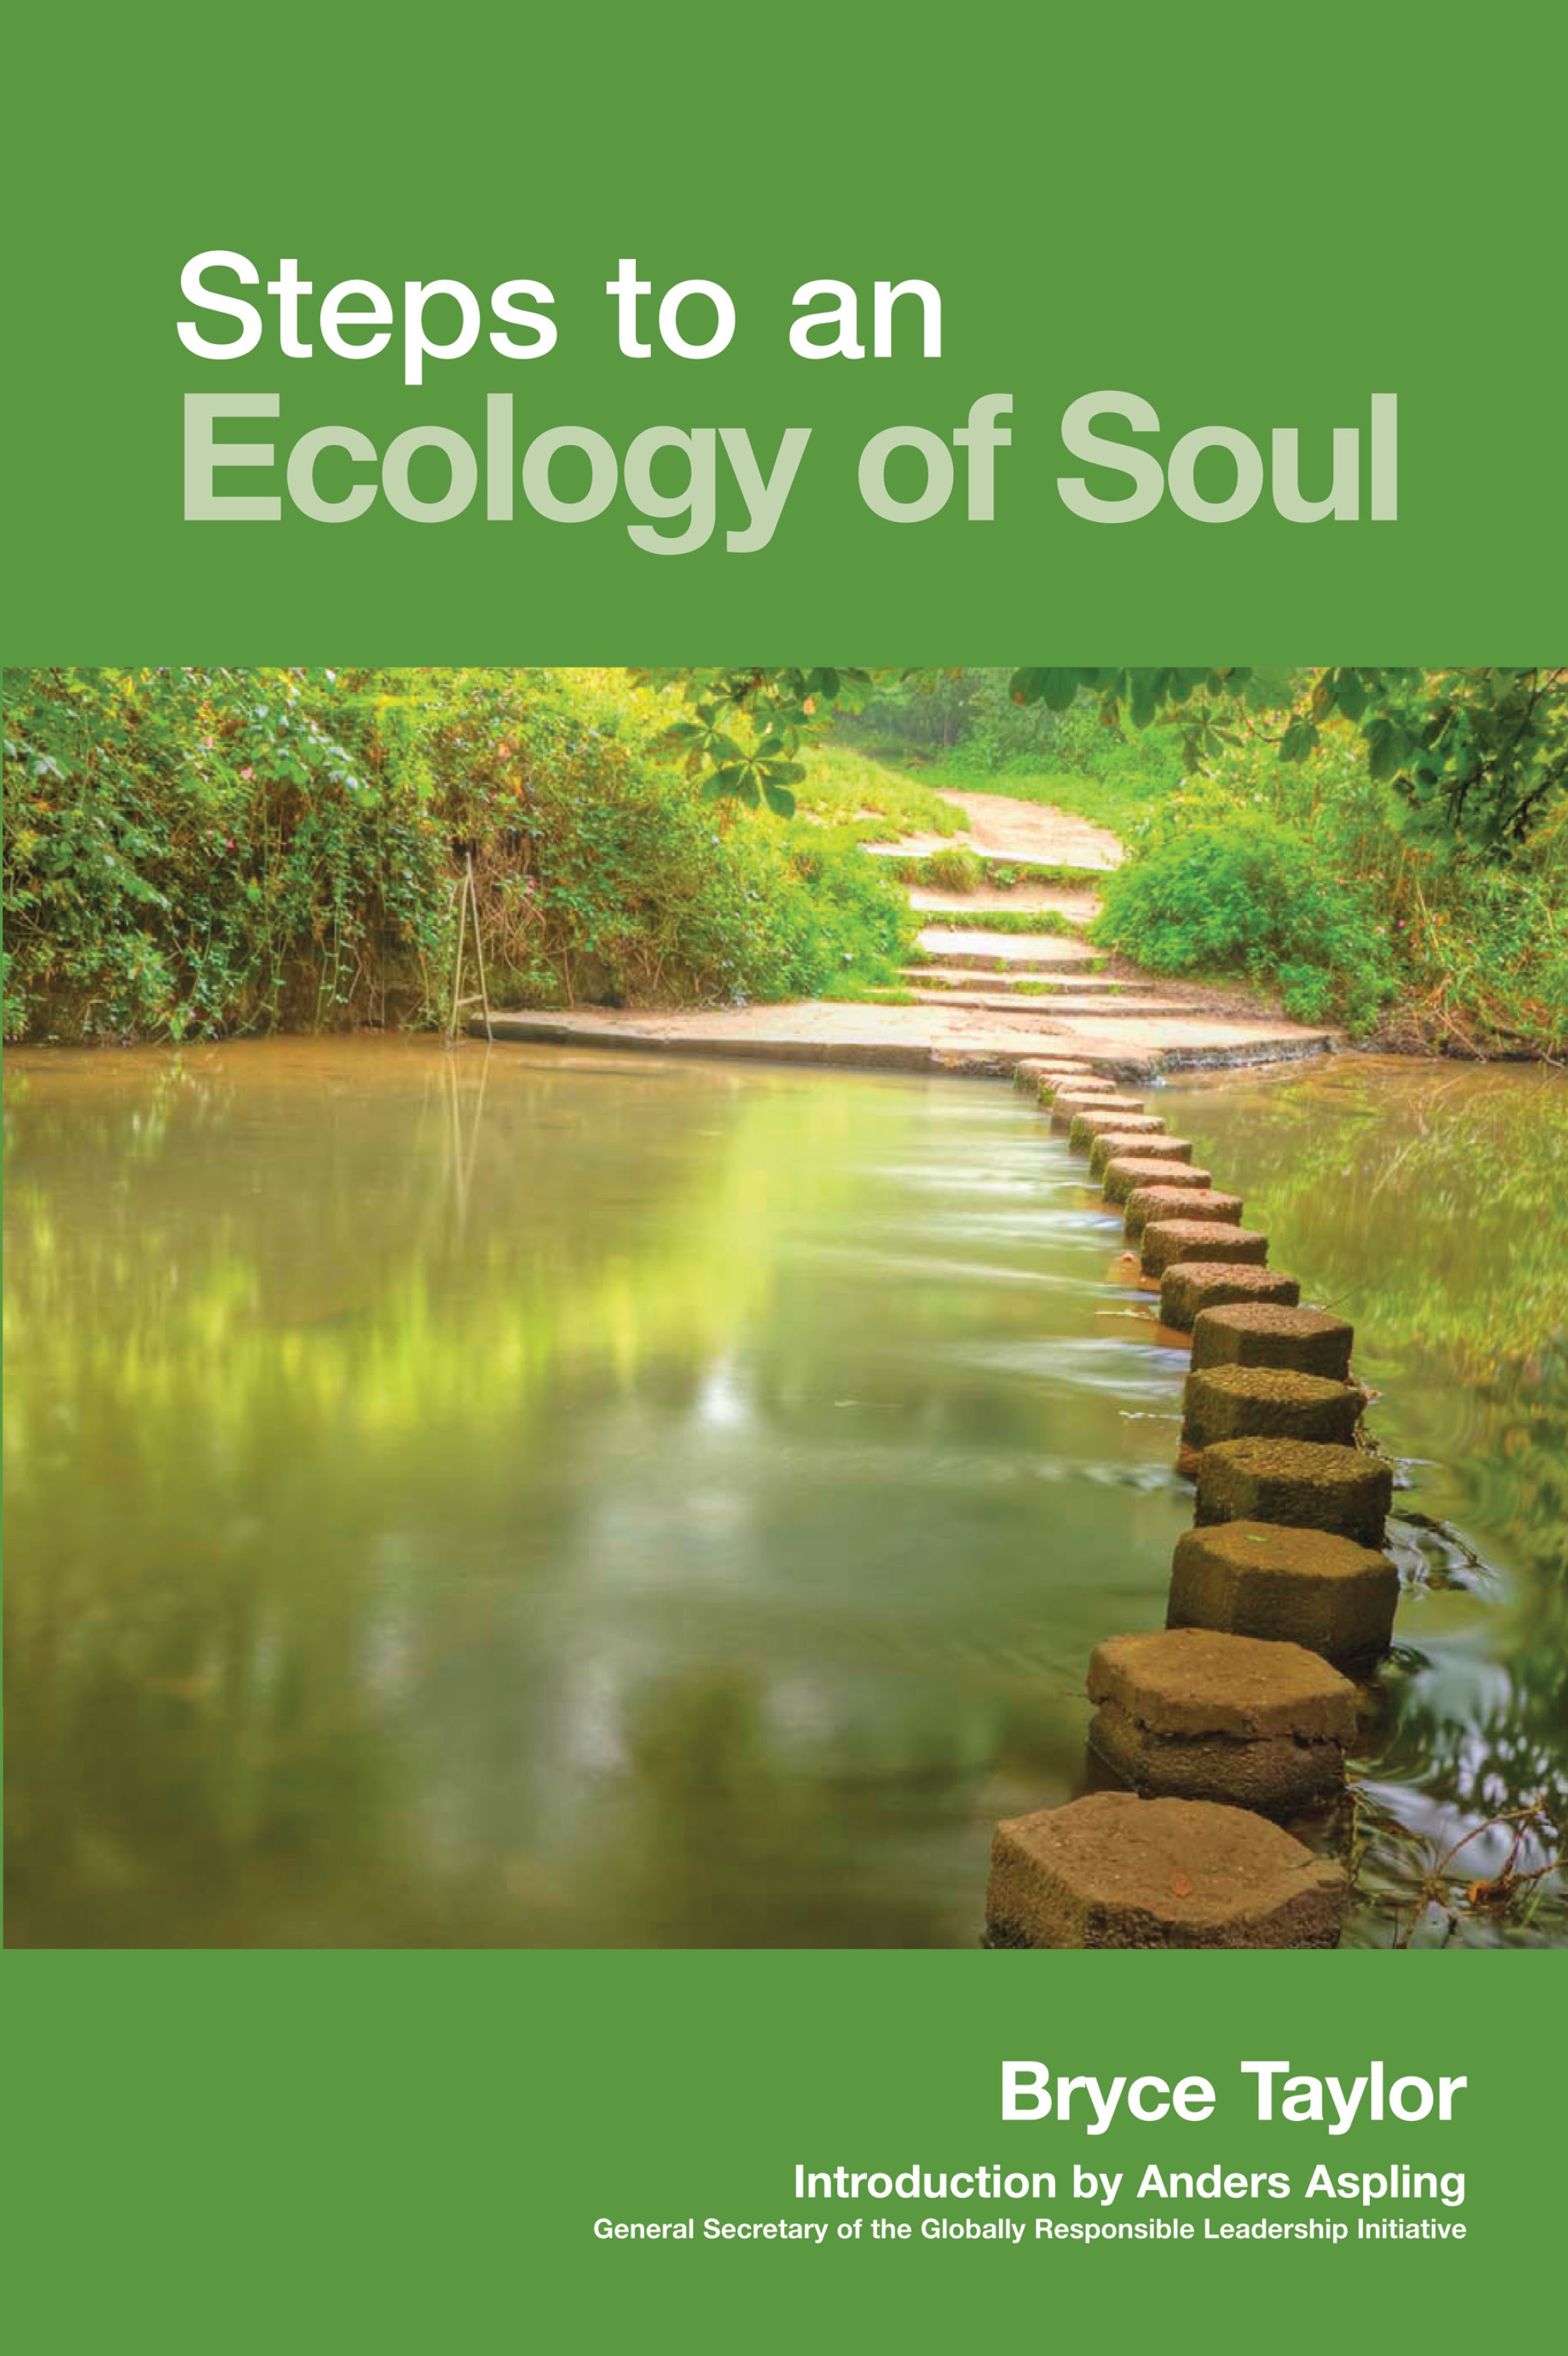 Steps to an Ecology of Soul